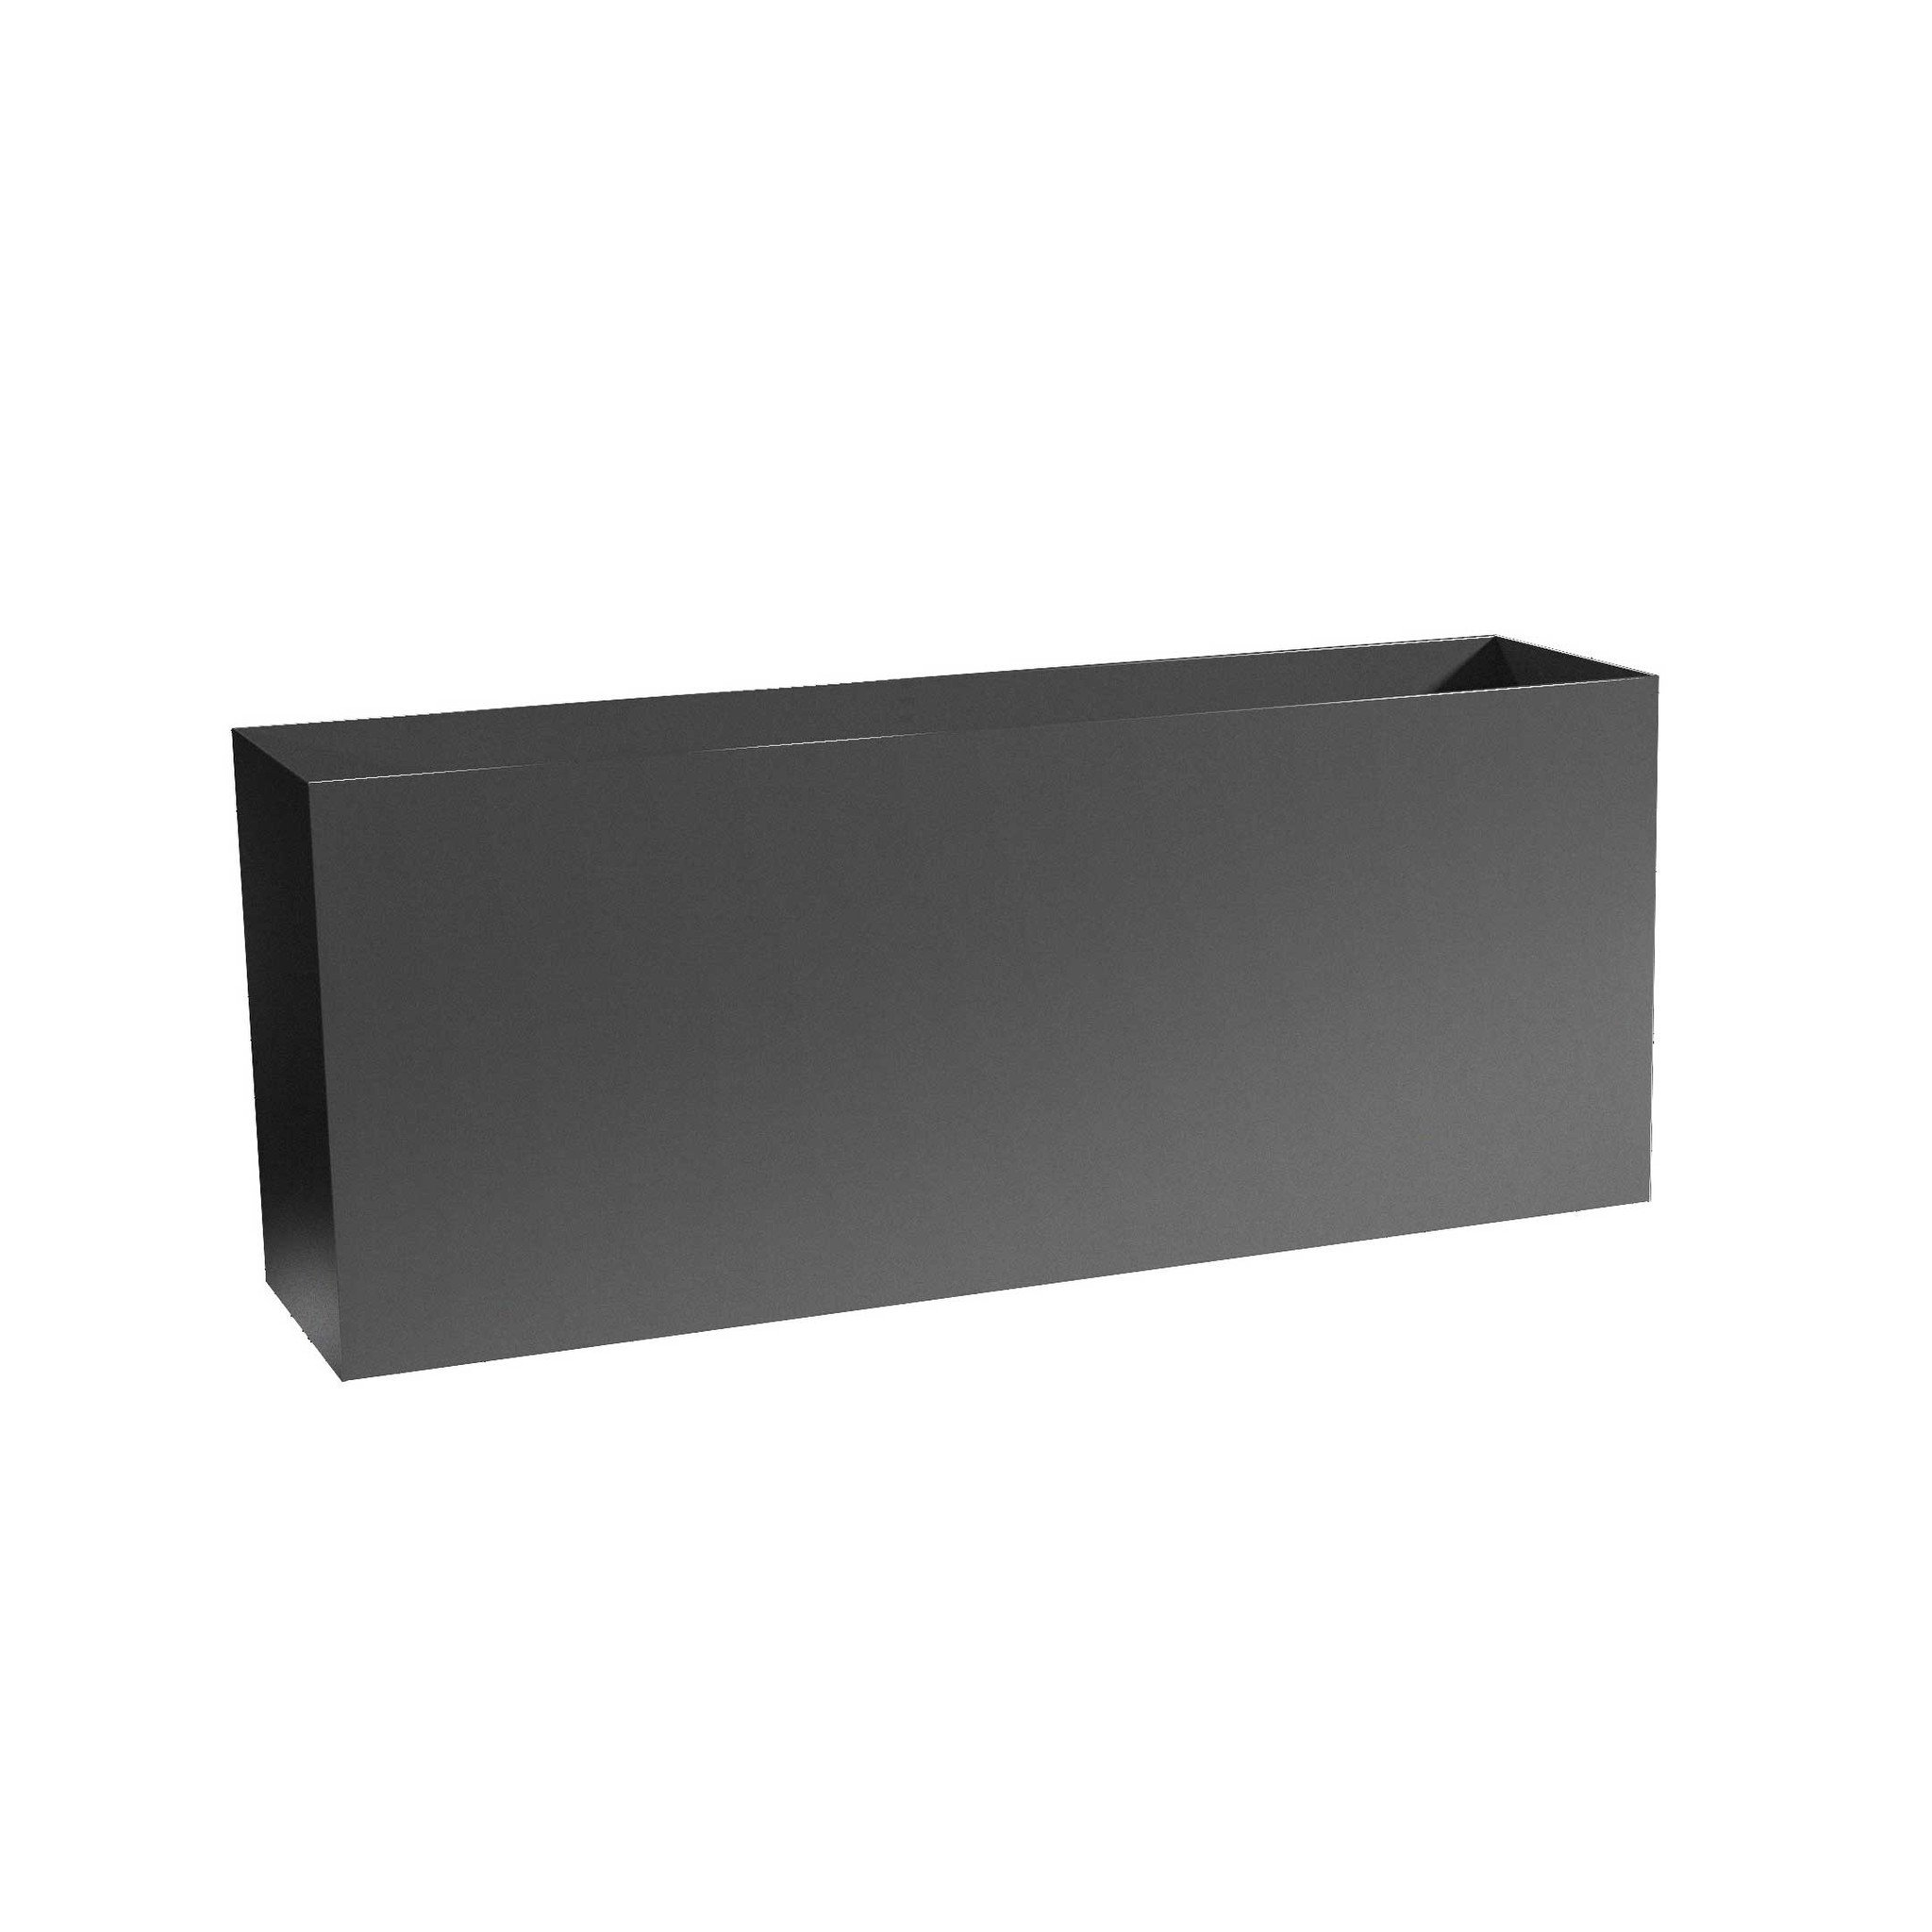 Low Profile Metal Planter Boxes - Aluminum - 16' Tall, (32'/36'/40'/46' Length; 10' Width)